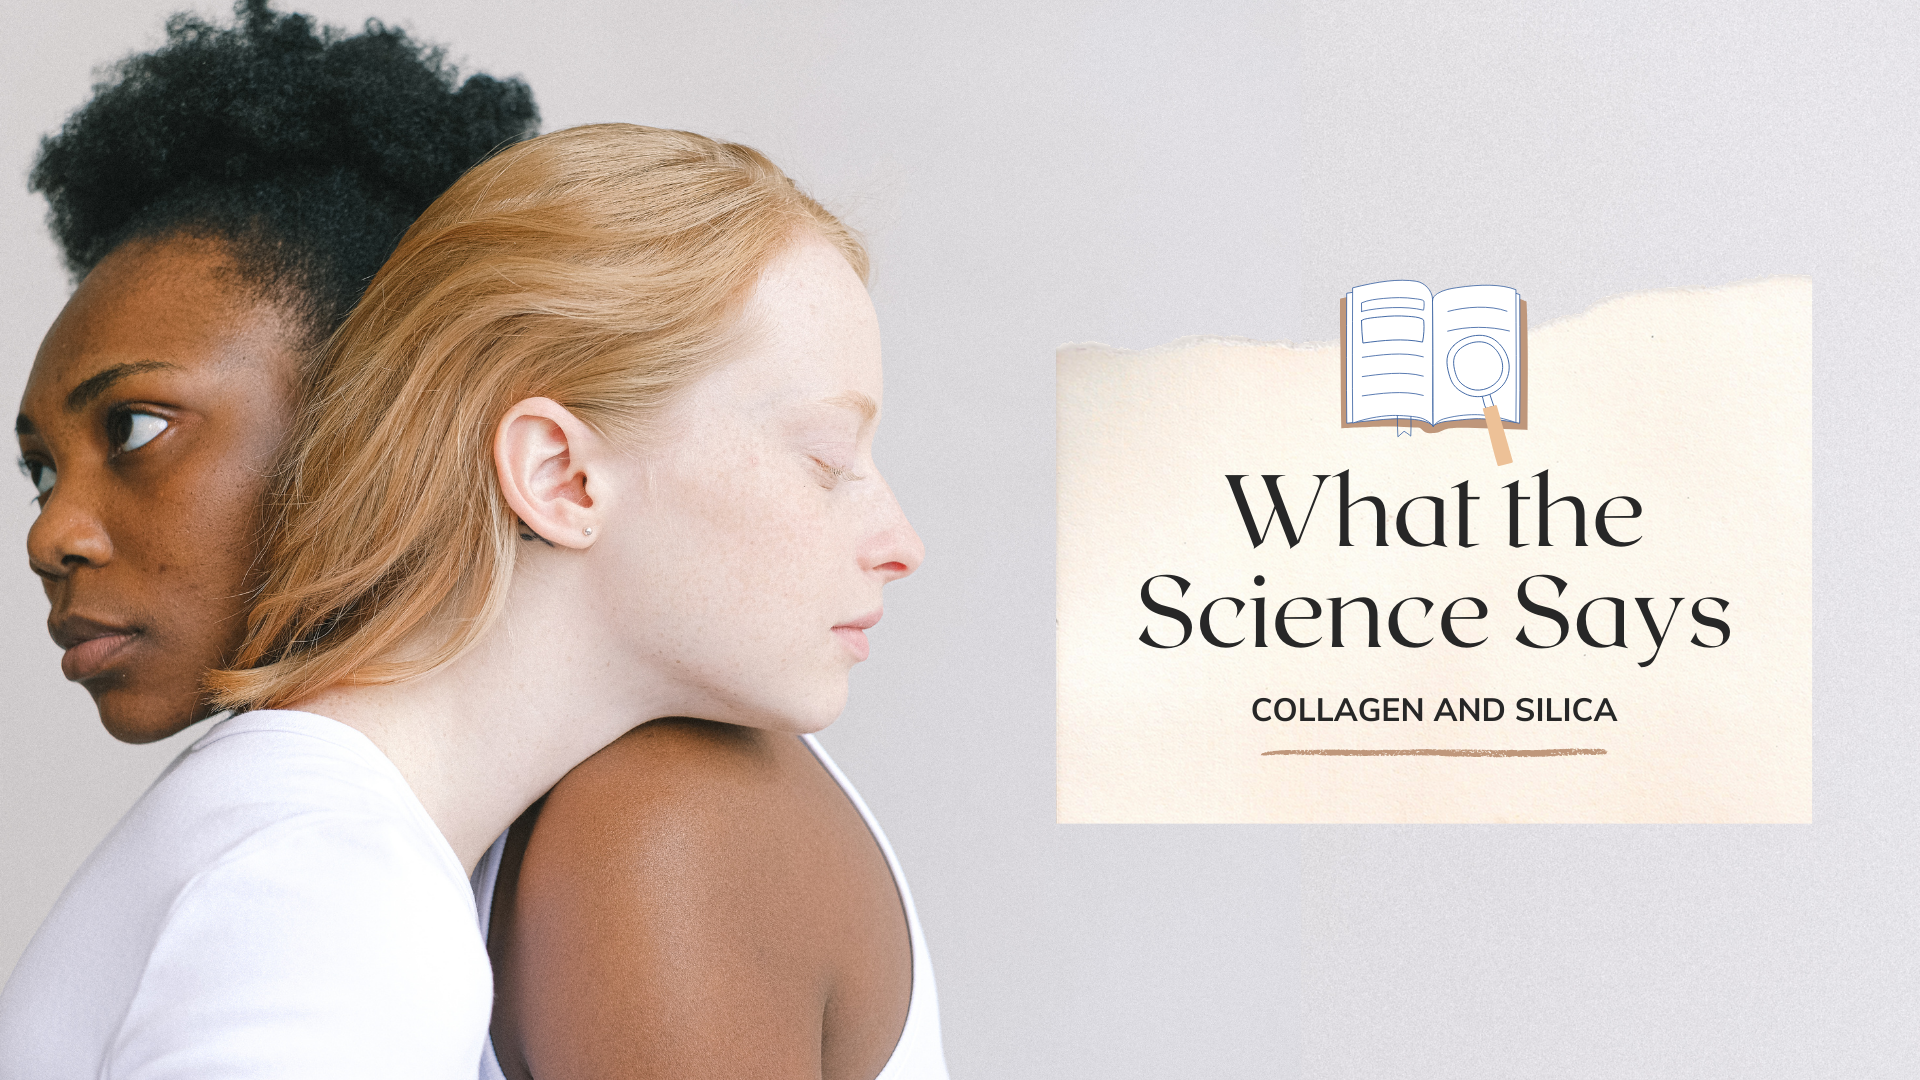 What the Science Says: Collagen and Silica